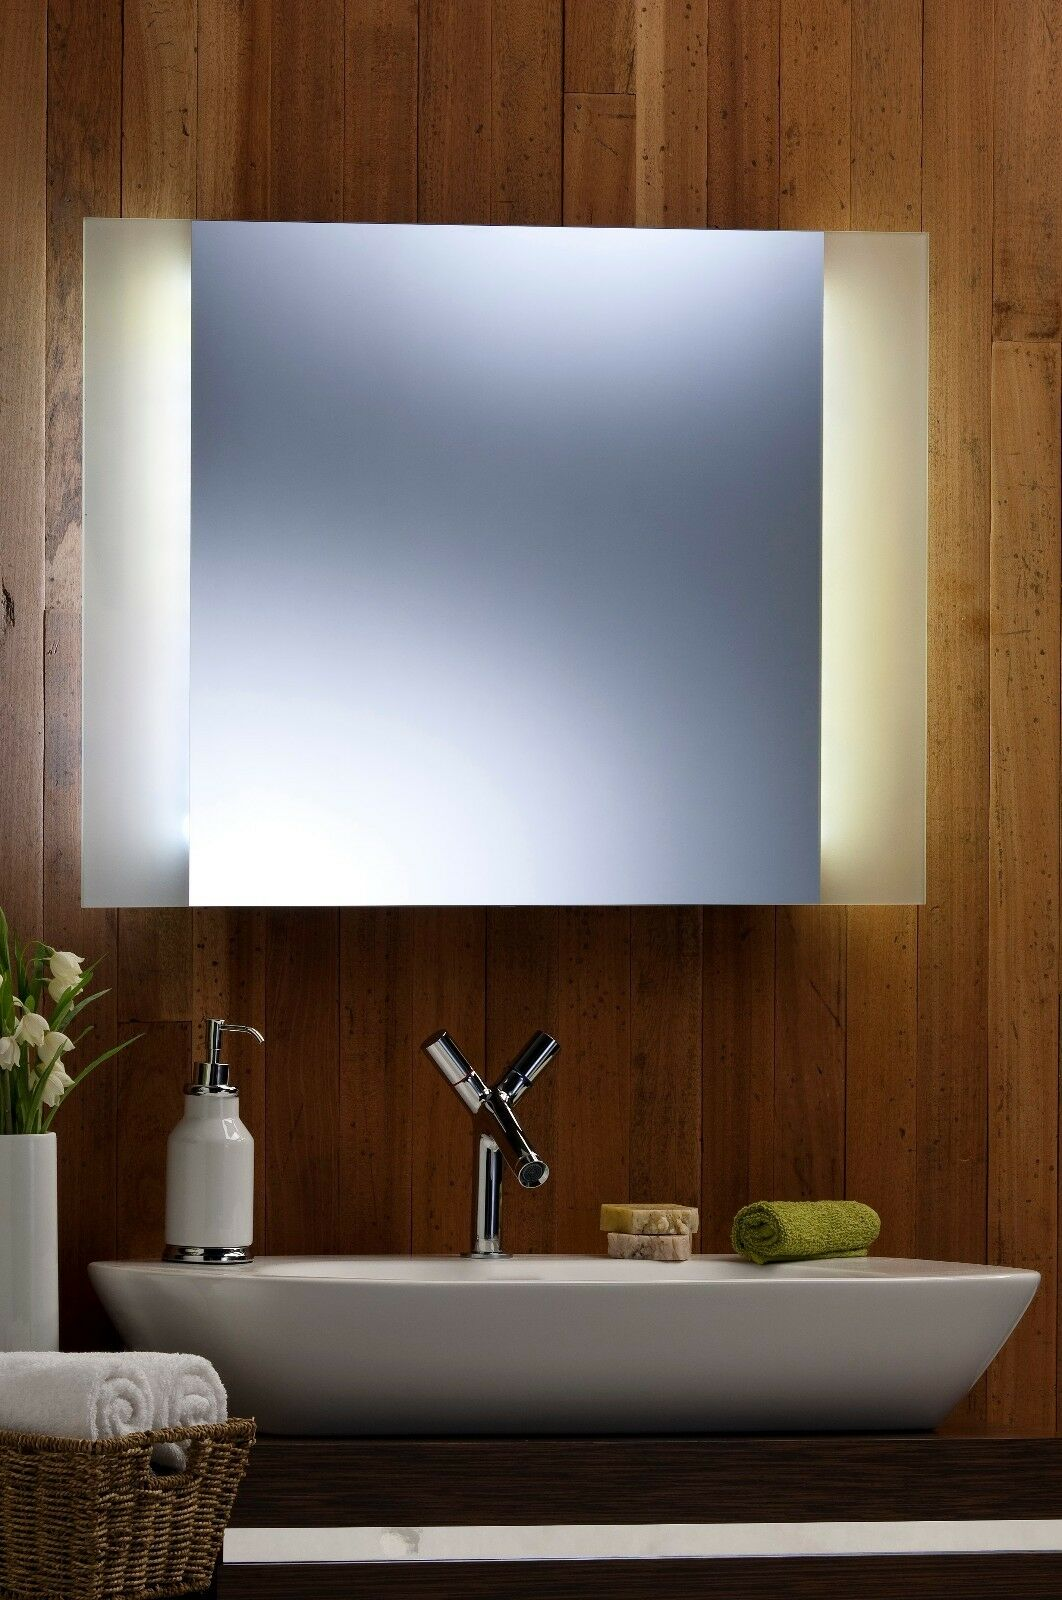 Bathroom wall mirror led ambient surround light with frosted edging rect 60 x 80 5391503677857 Neue design bathroom mirror